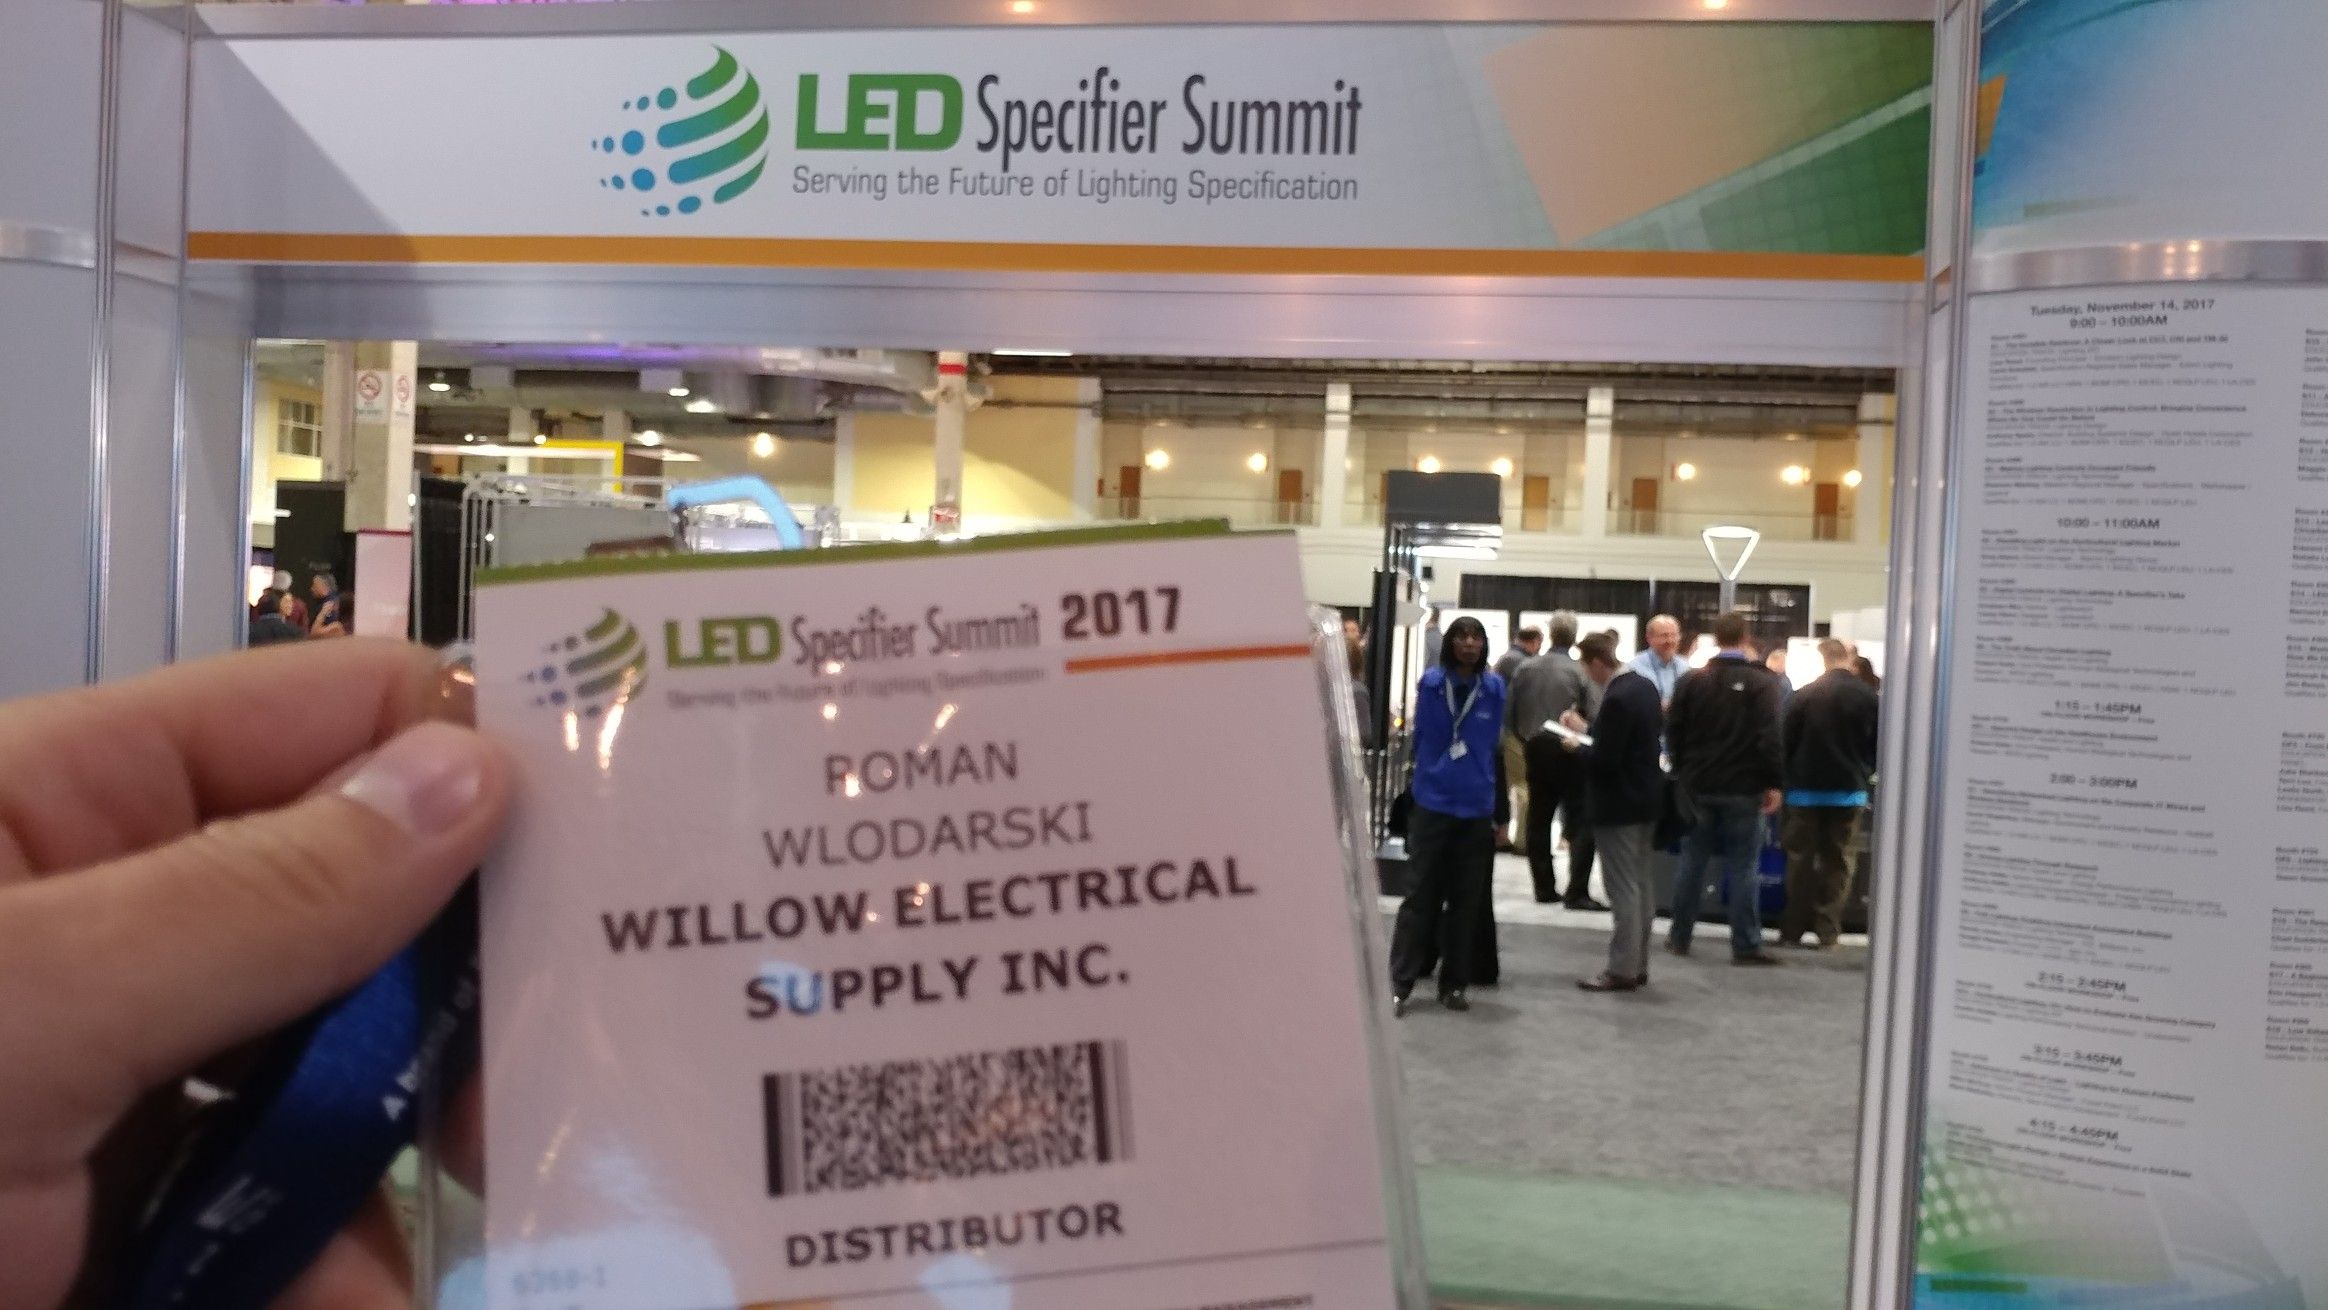 led summit specifier event chicago 2017 chicago